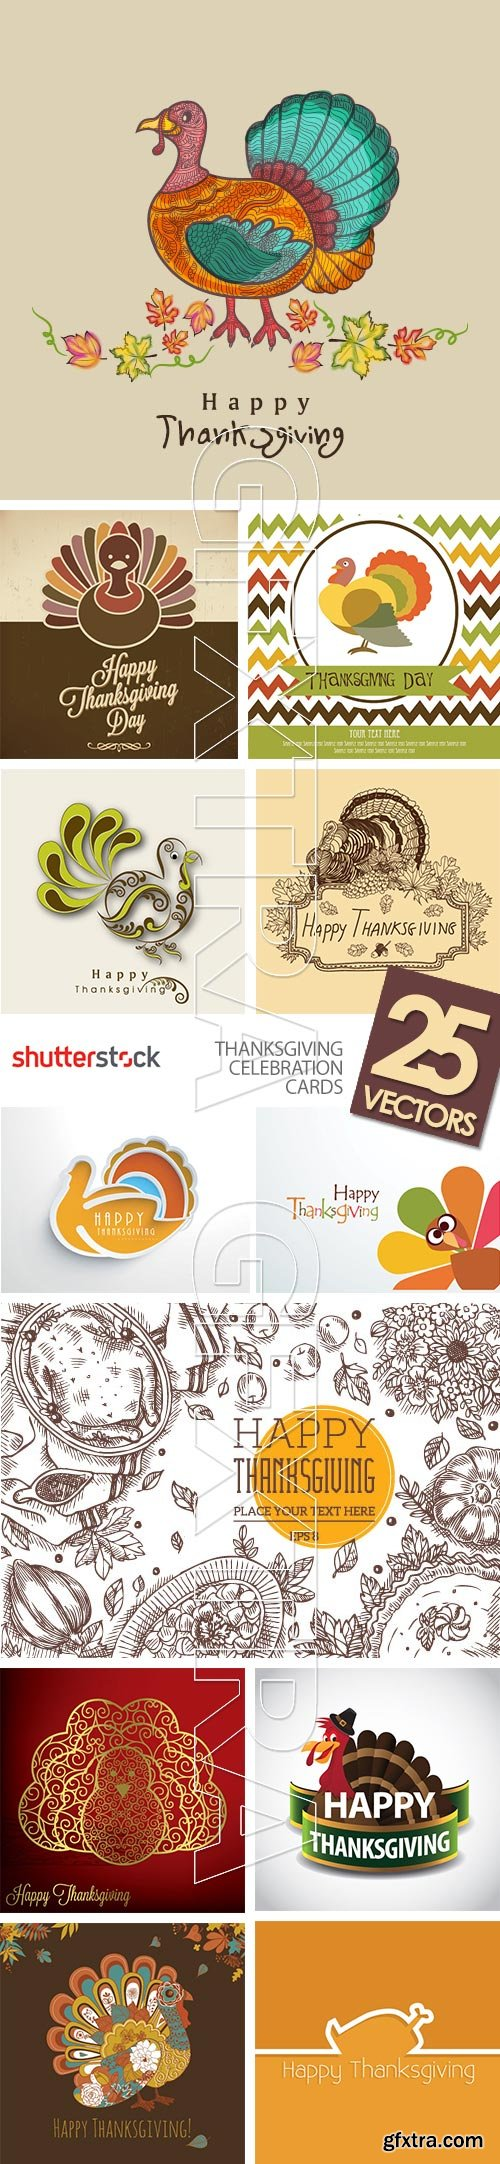 ThanksGiving Celebration Cards 25xEPS